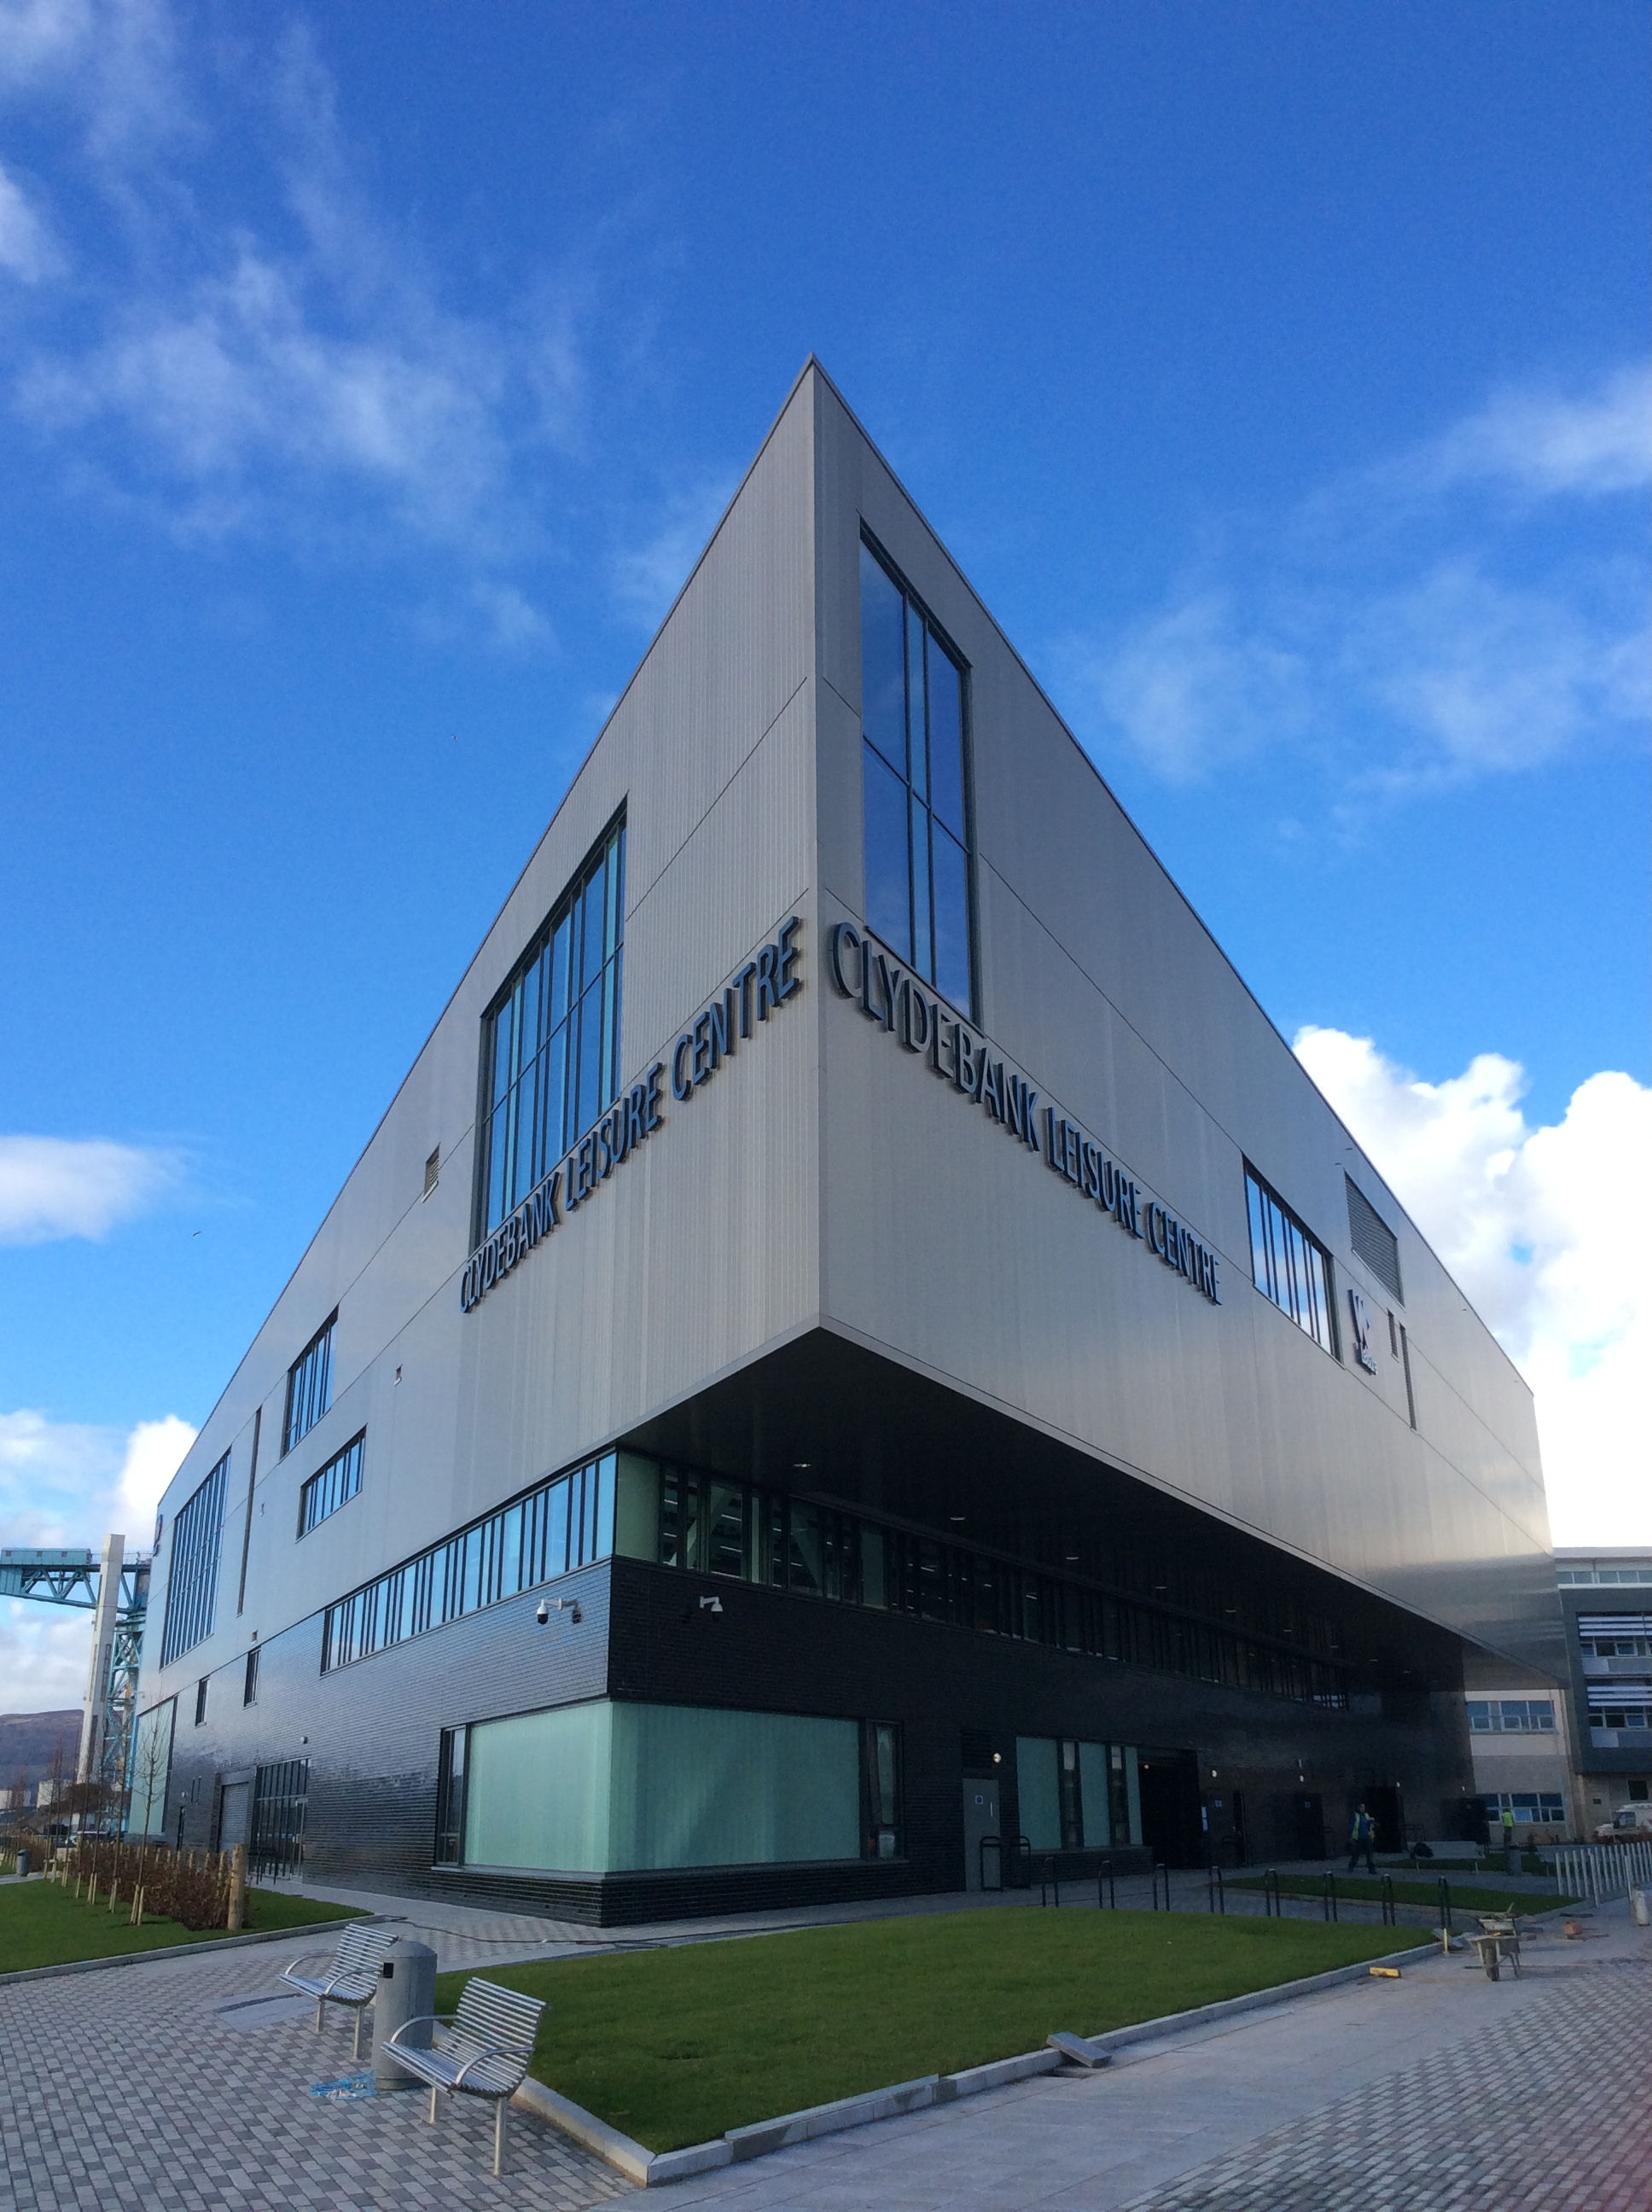 Clydebank Leisure Centre External